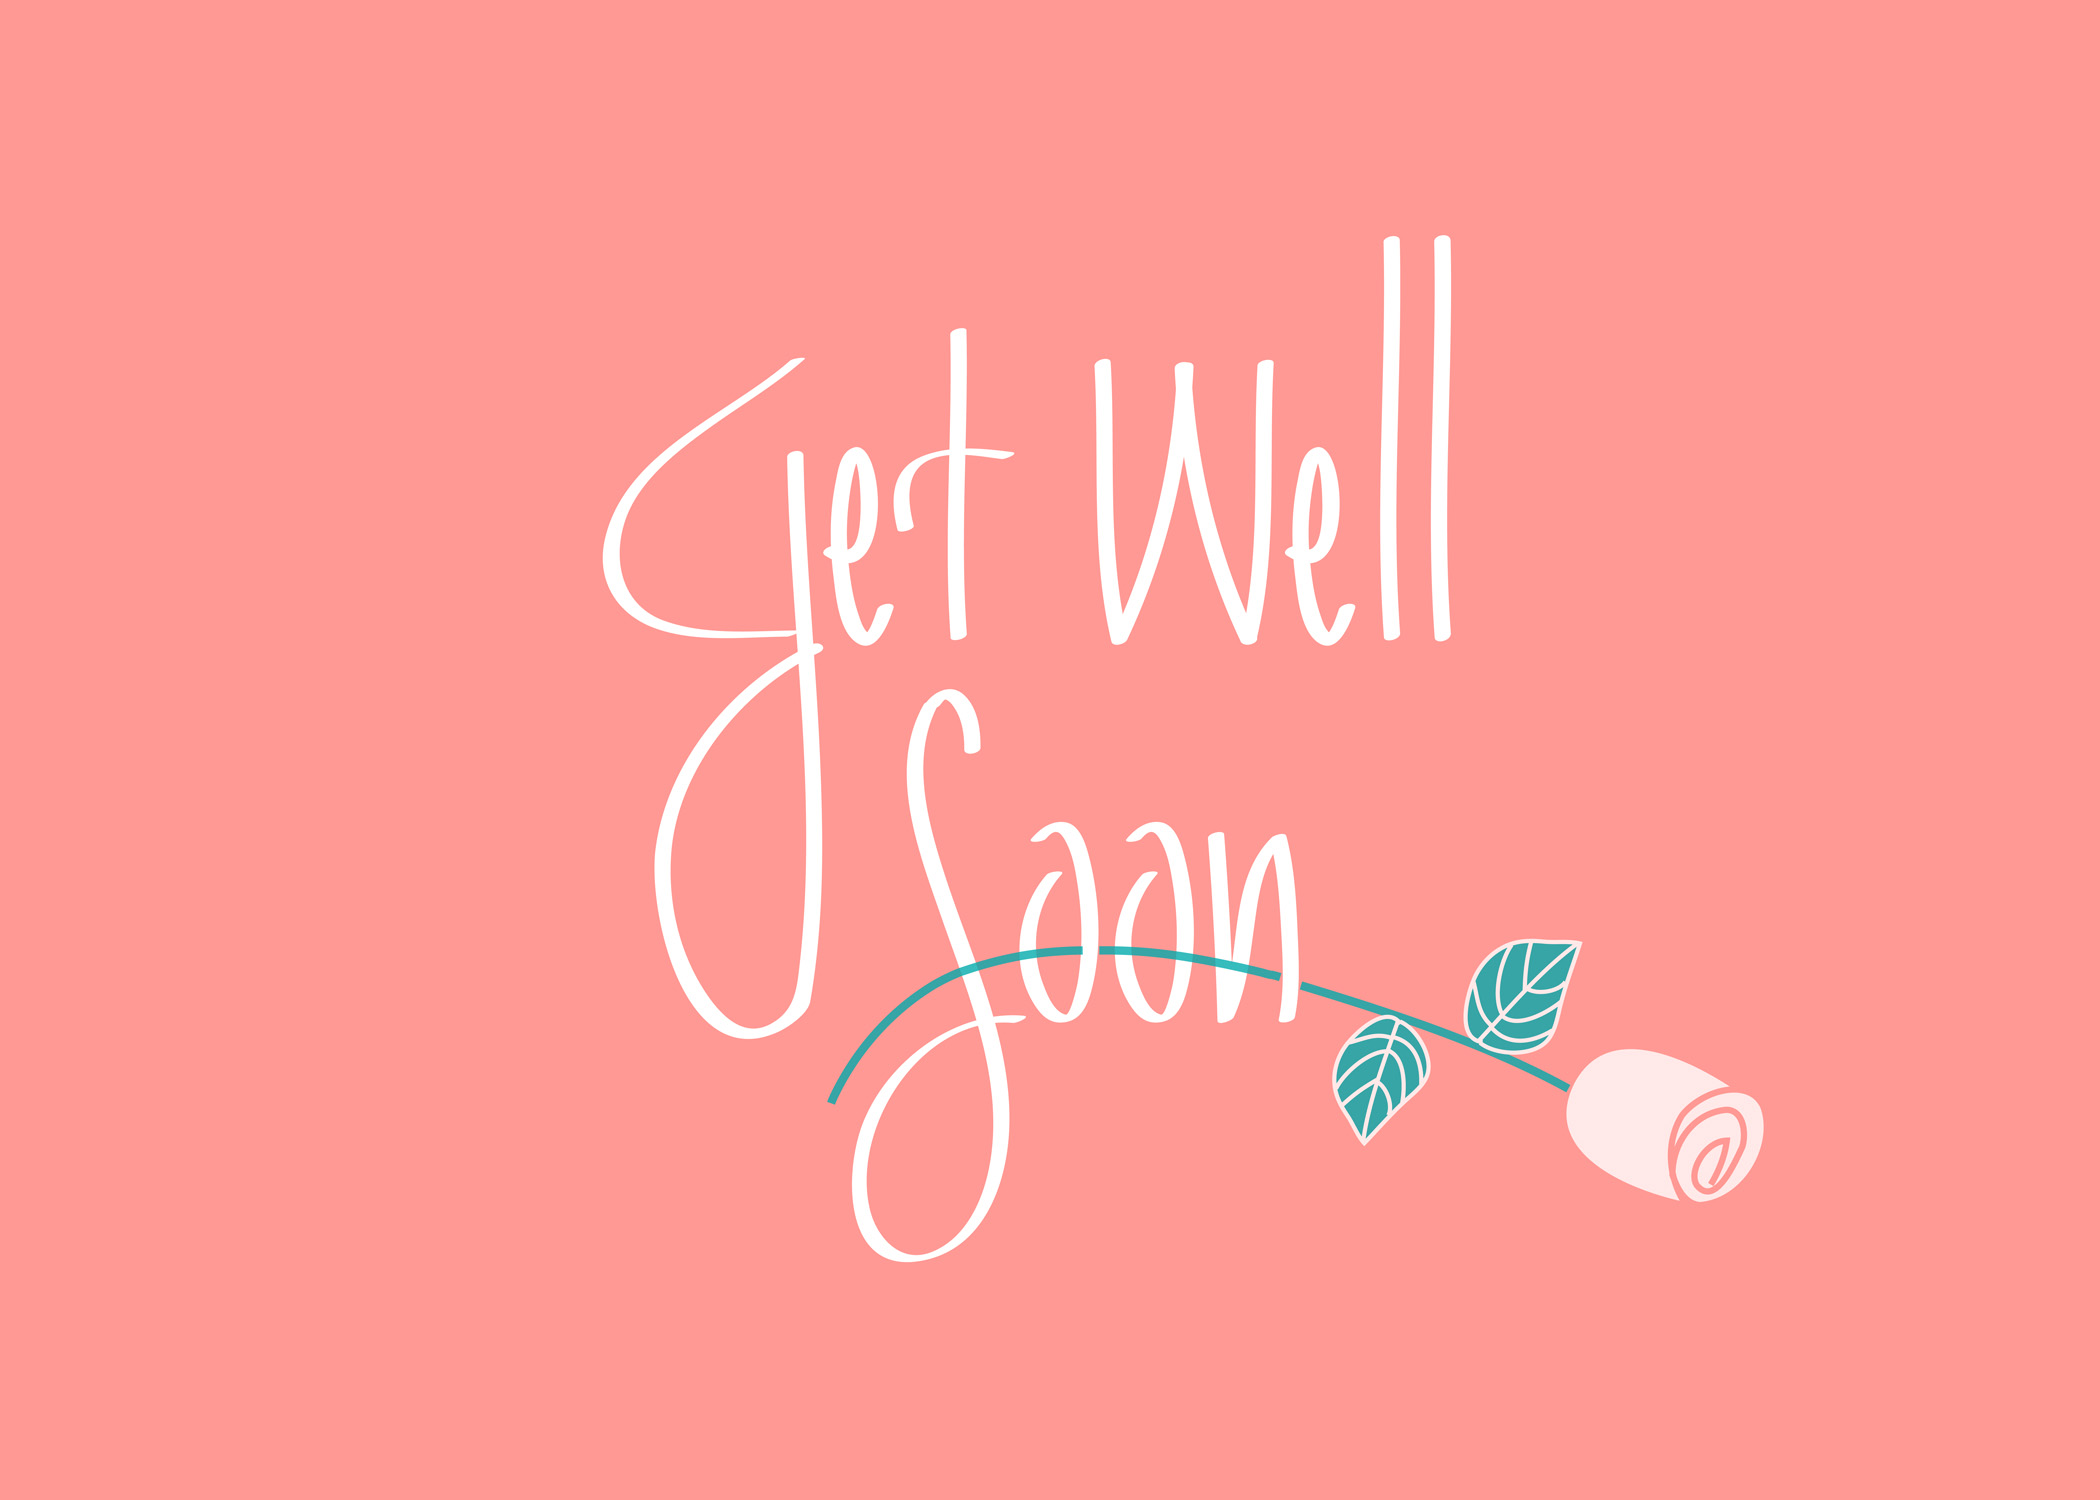 Get Well Soon with flower blue